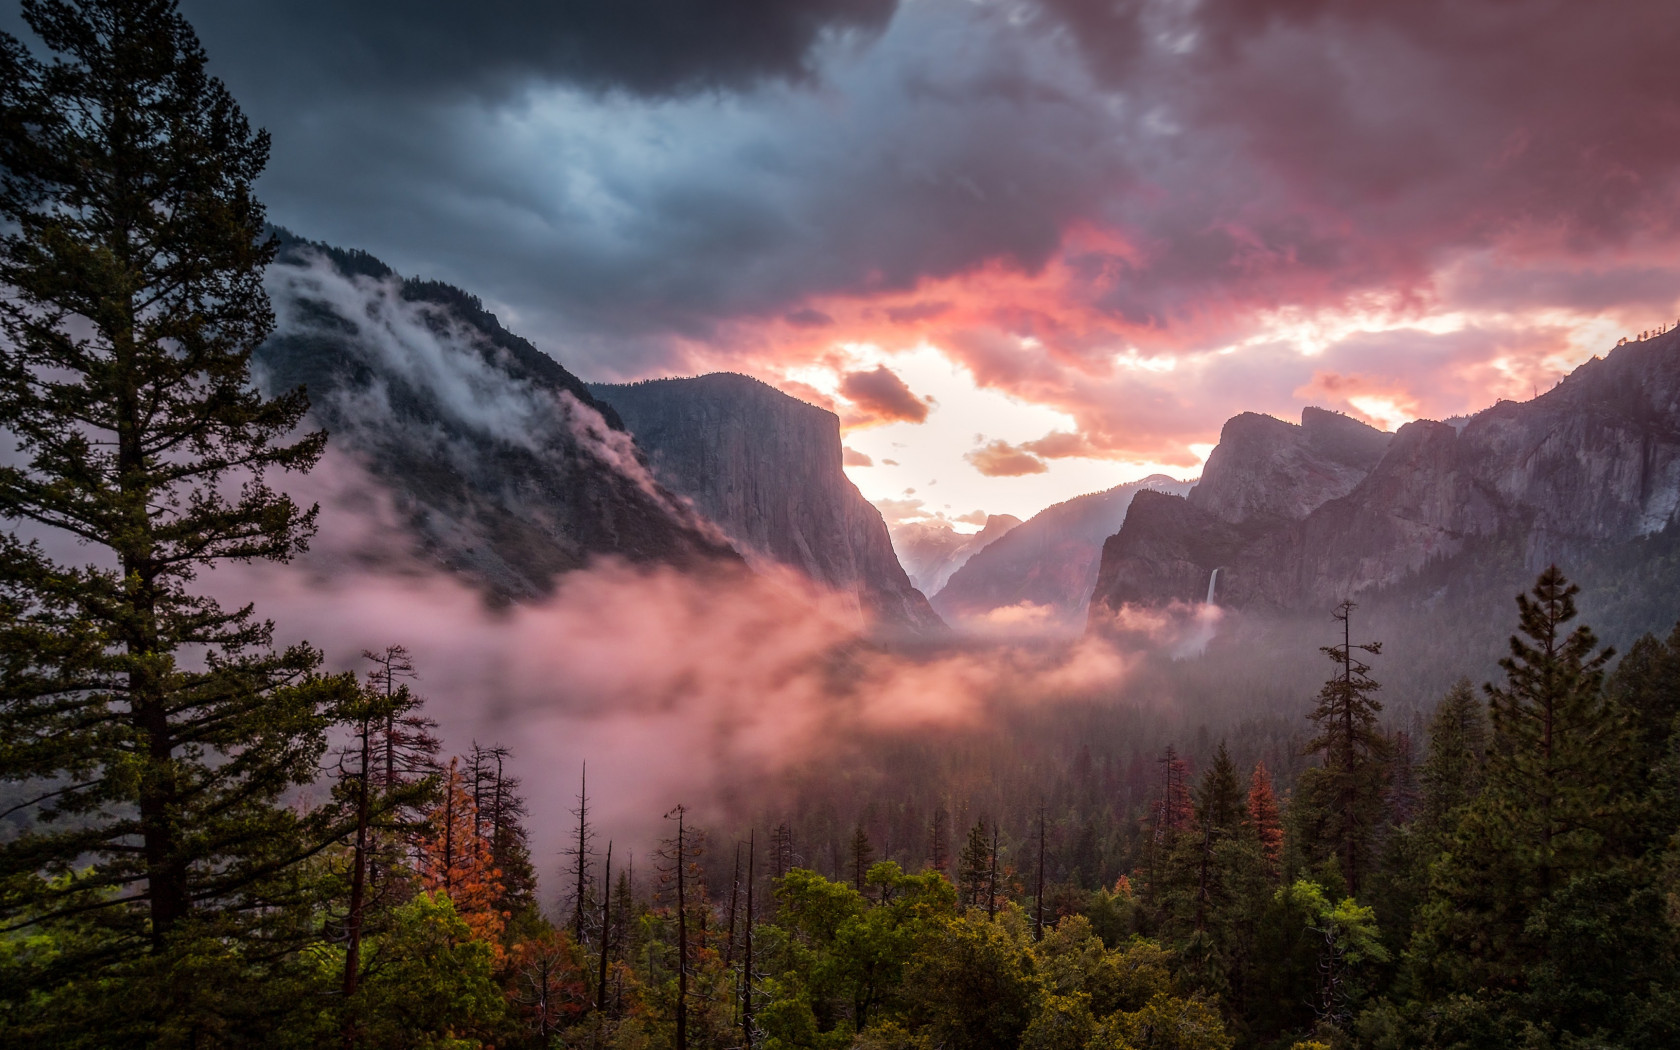 Landscape from Yosemite National Park | 1680x1050 wallpaper